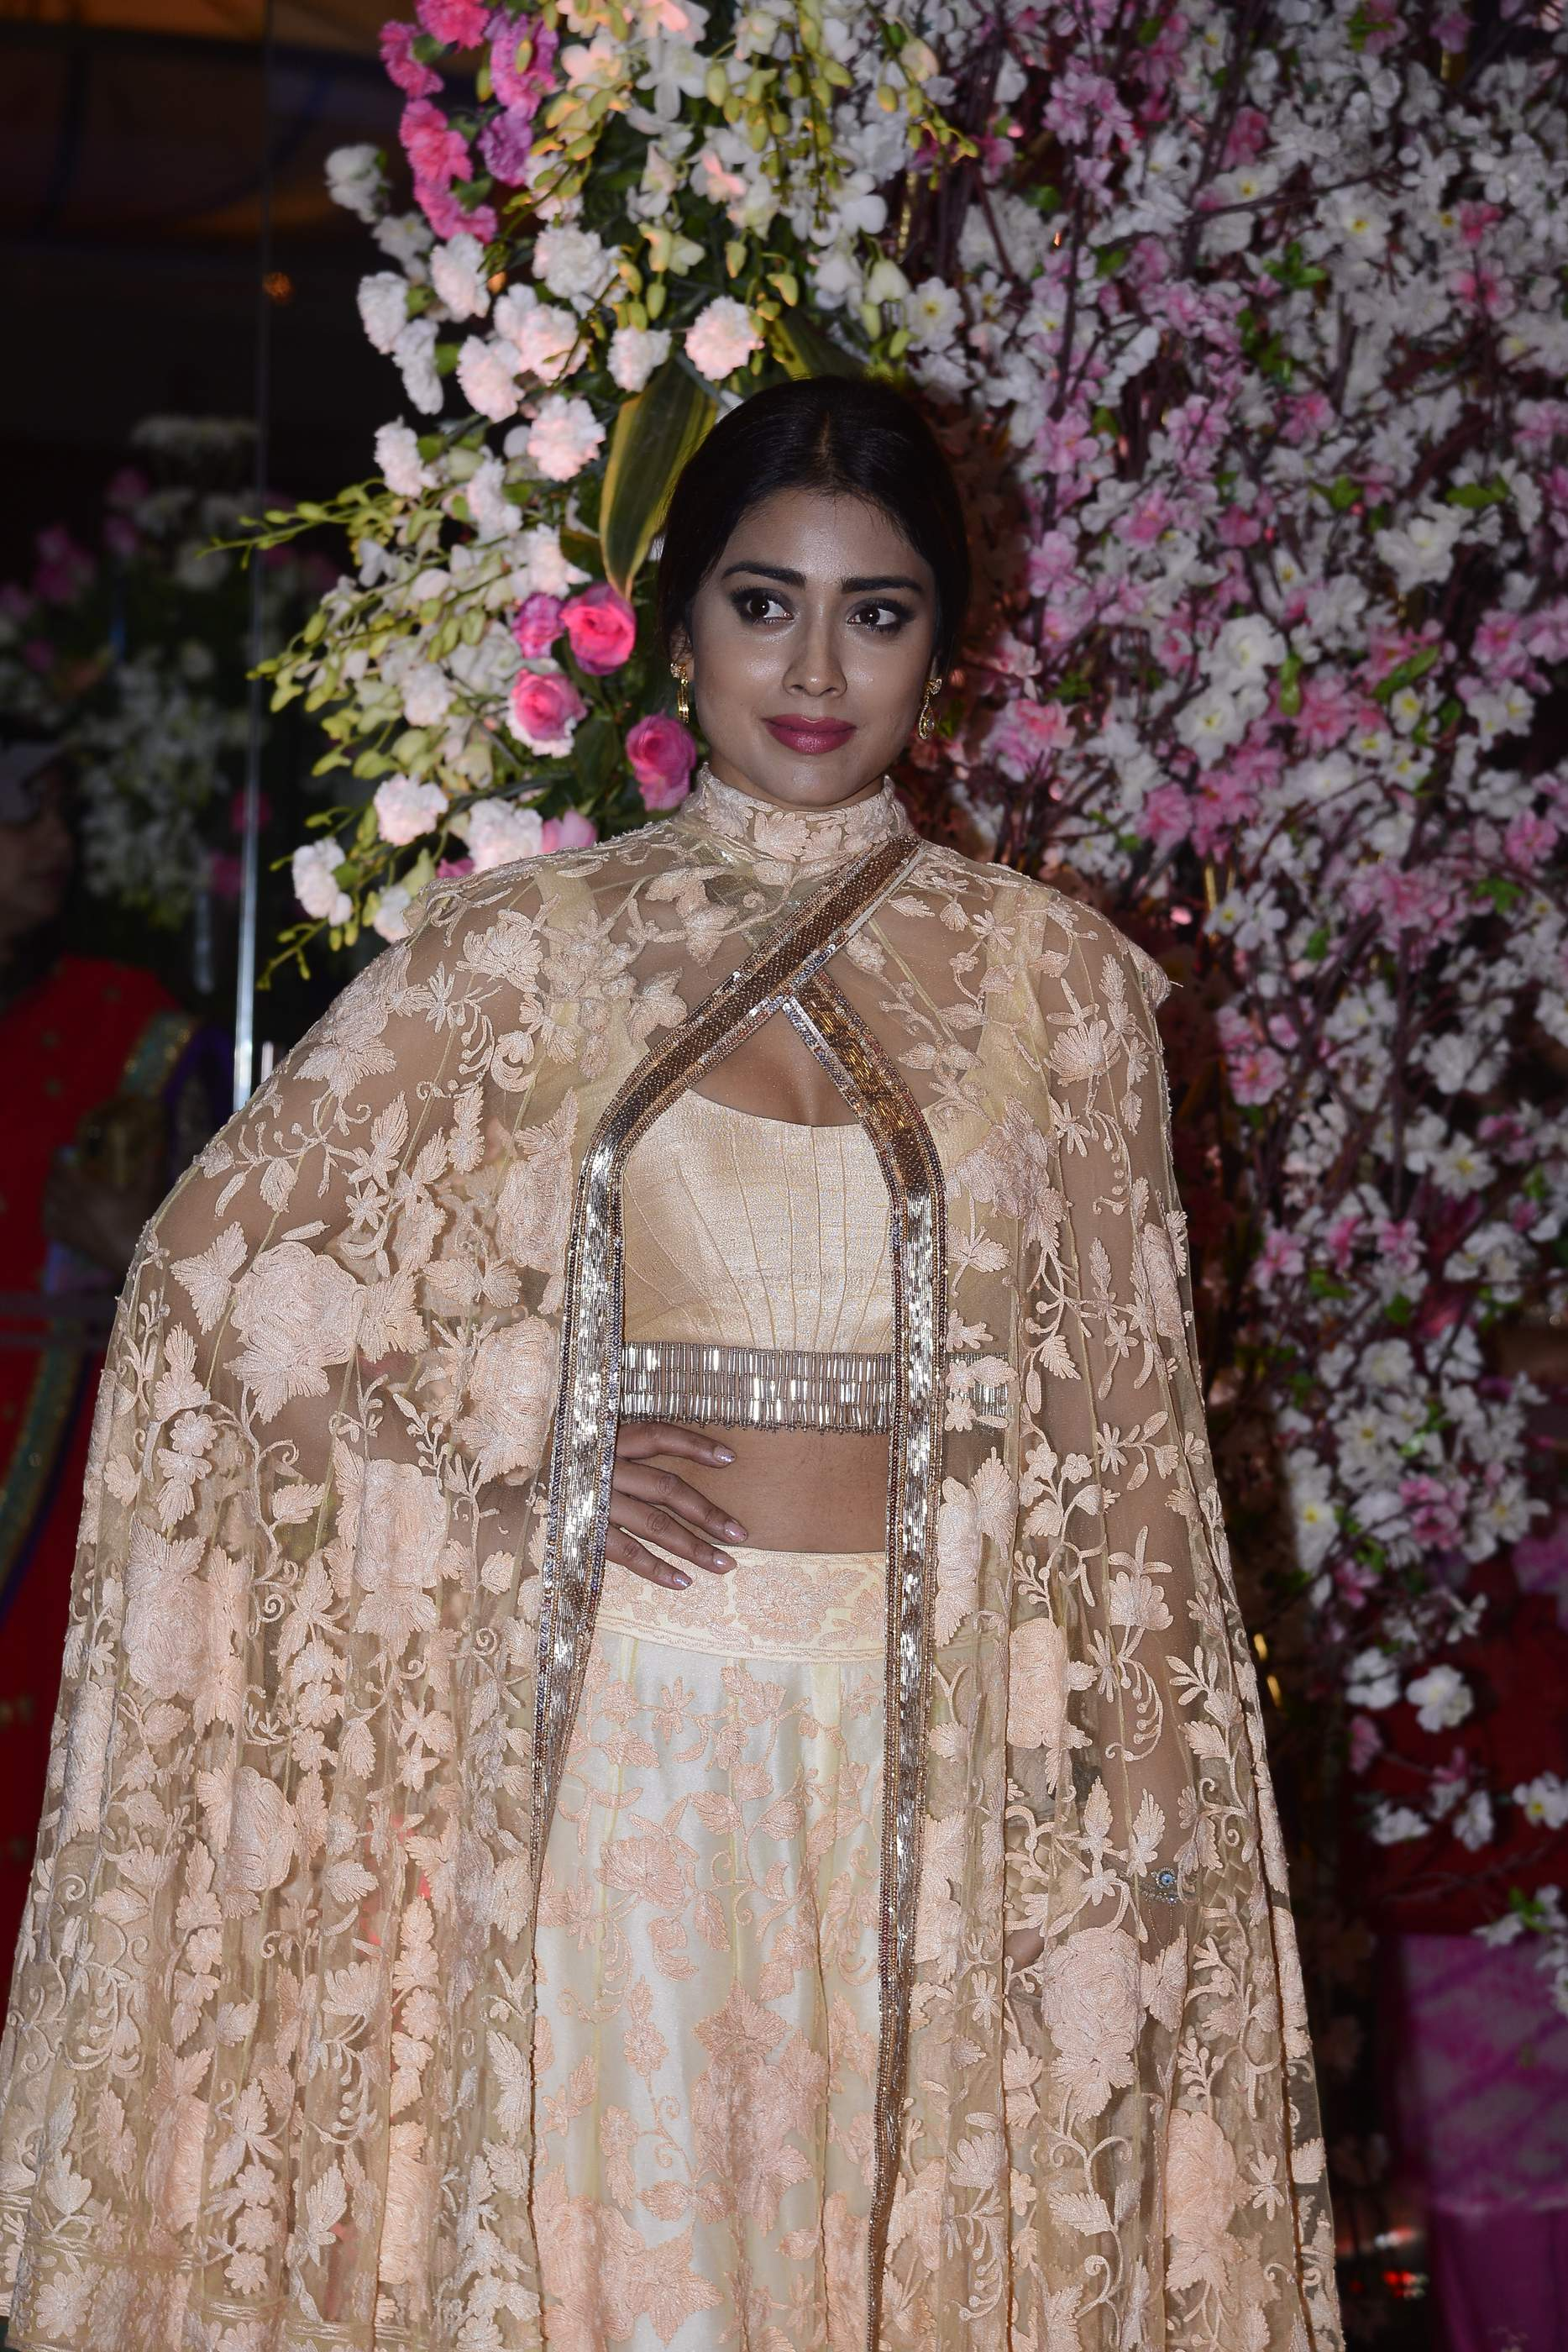 neil nitin mukesh Celebs Sizzle In Sexy Outfits | Neil Nitin Mukesh | Bollywood Neil Nitin Mukesh Wedding Reception 152 Celebs Sizzle In Sexy Outfits | Neil Nitin Mukesh Celebs Sizzle In Sexy Outfits | Neil Nitin Mukesh Neil Nitin Mukesh Wedding Reception 152